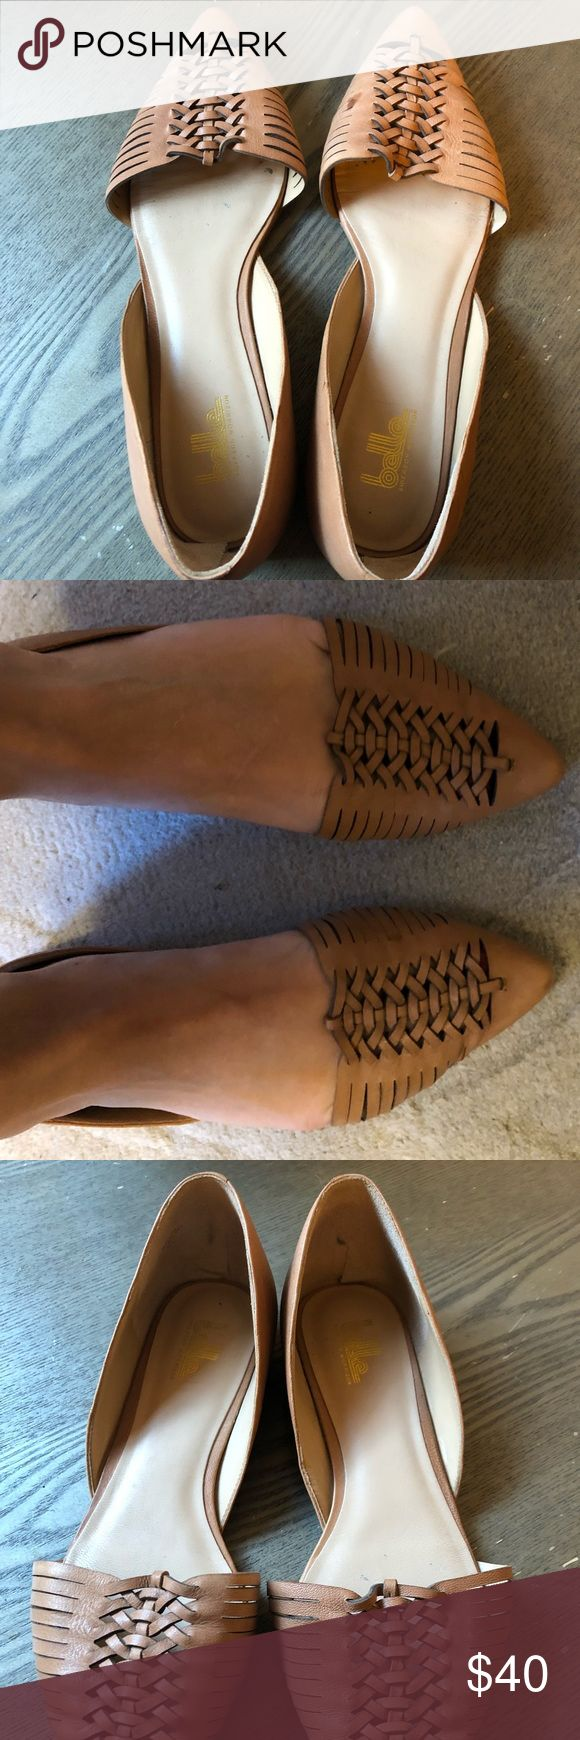 Tan leather flats Belle by Sigerson Morrison Barely worn cute leather flats with woven details on toe. They are very comfortable and look great with dresses or with jeans. Belle by Sigerson Morrison Shoes Flats & Loafers